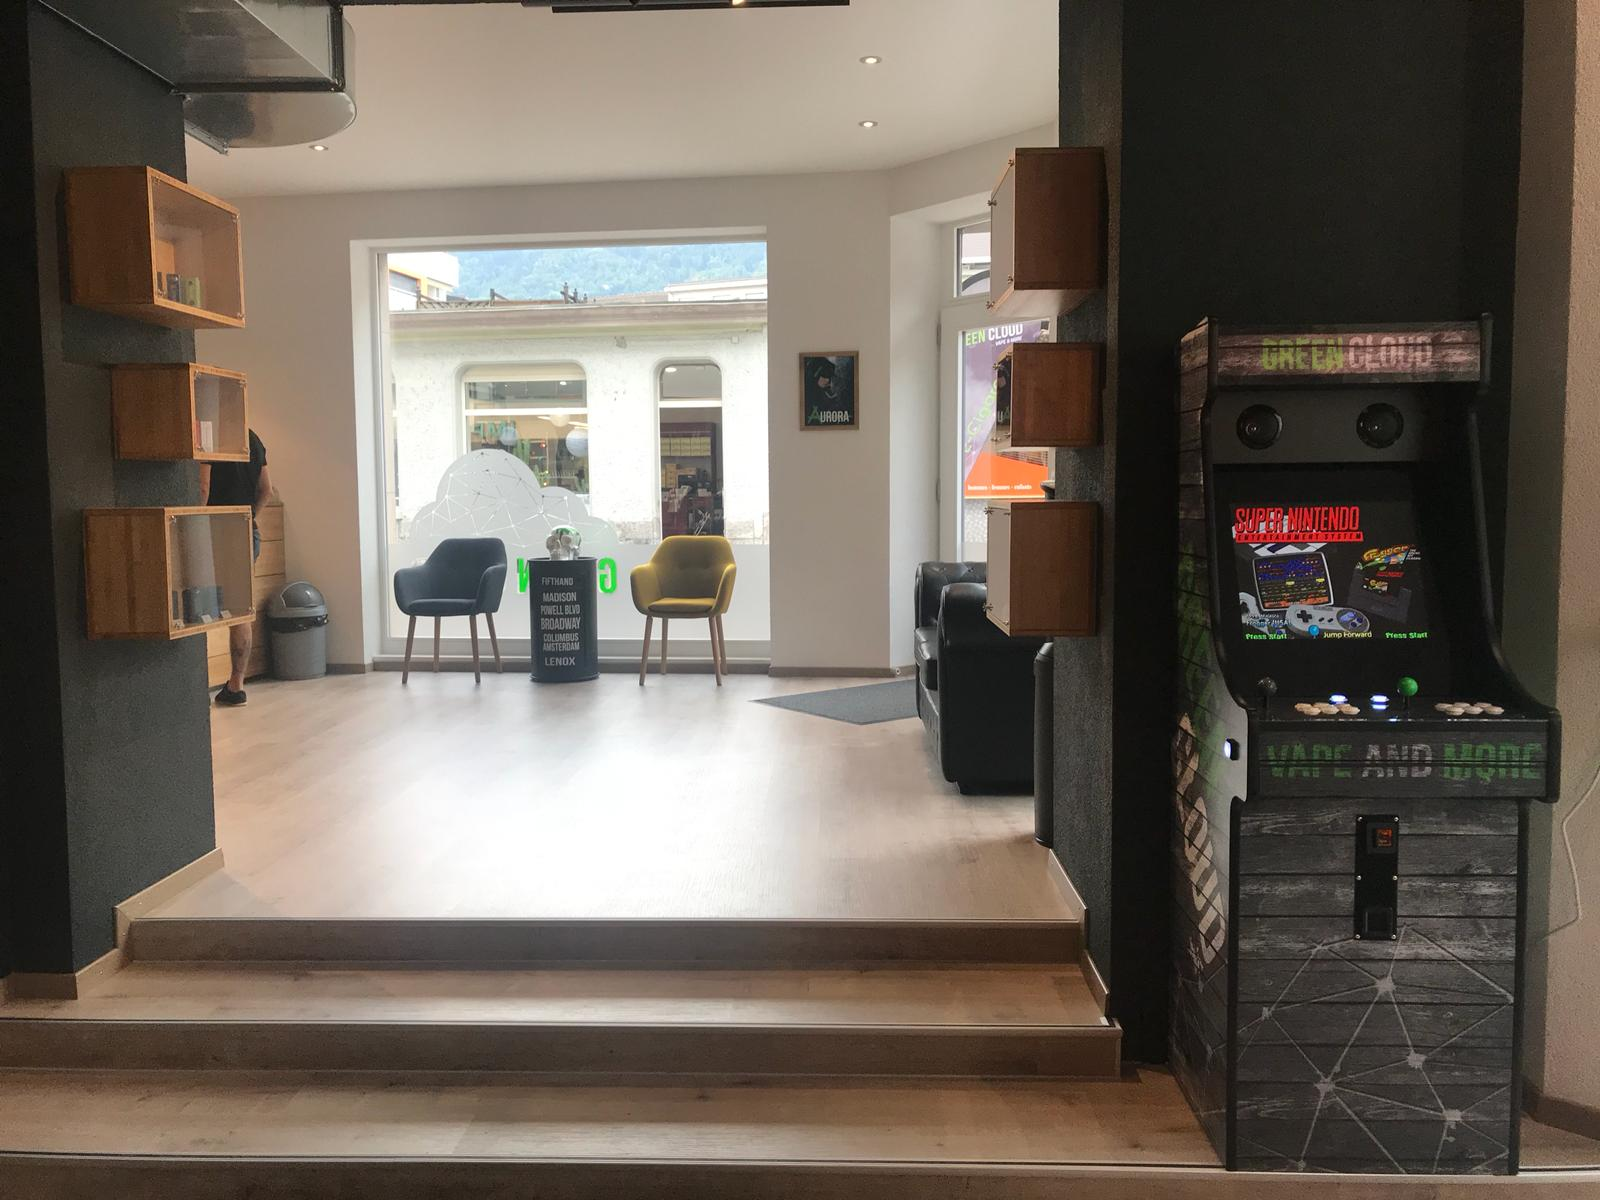 La borne arcade  Vape and lounge